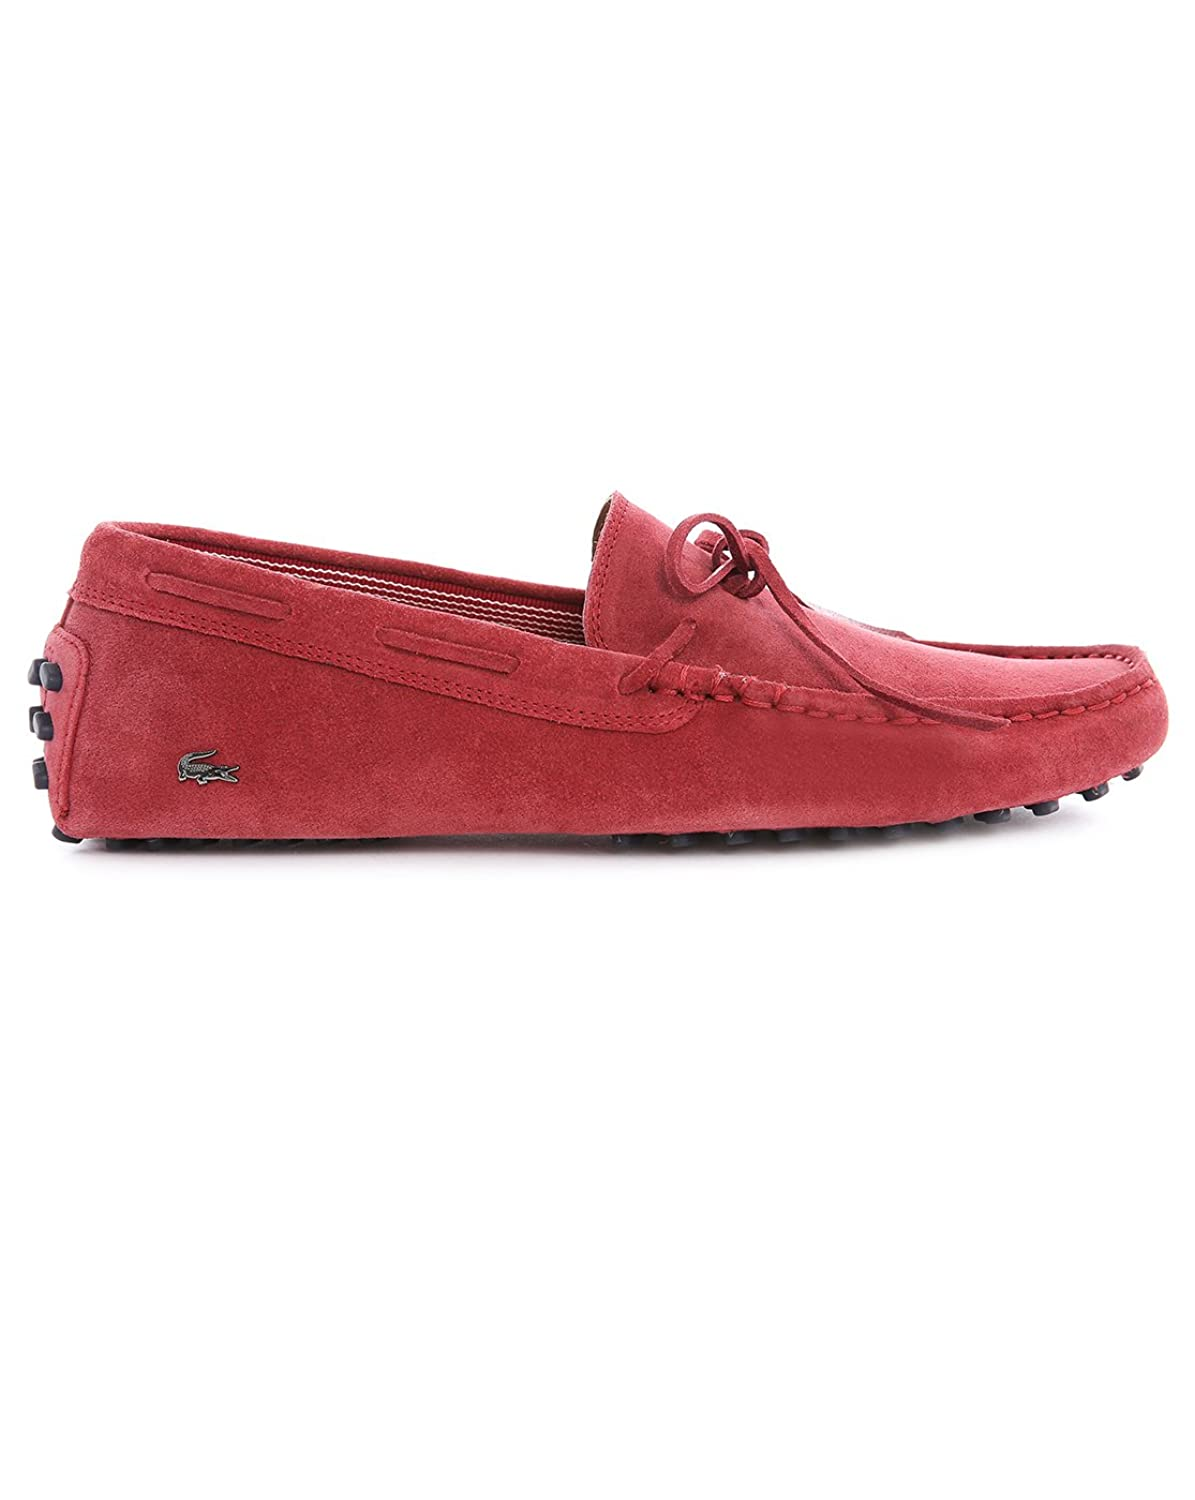 525ca55233ac Lacoste Men s Concours Lace 7 Suede Slip On Loafer Red-Red-11   Amazon.co.uk  Shoes   Bags